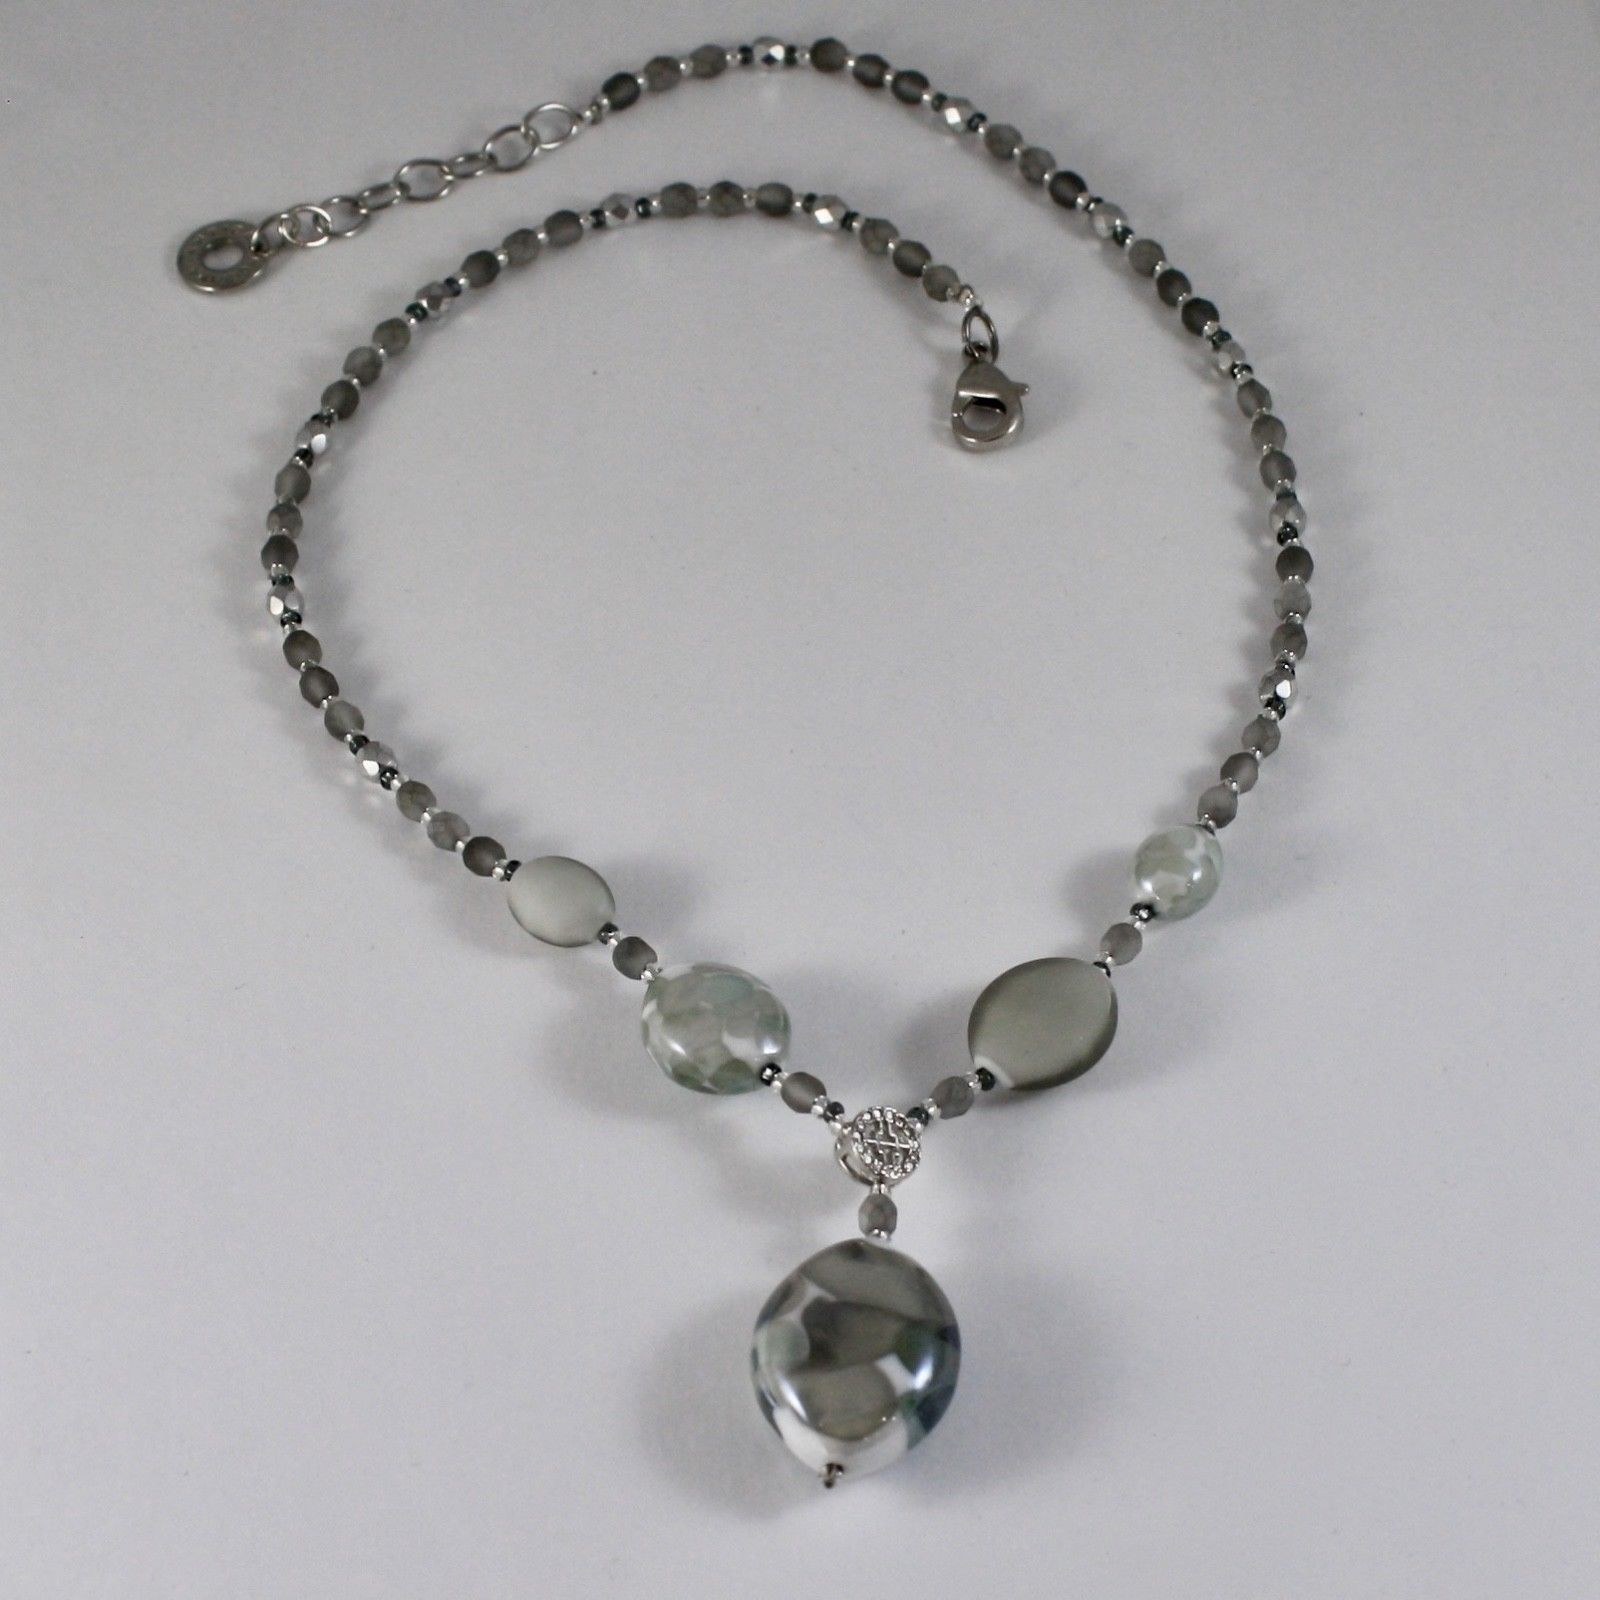 ANTICA MURRINA VENEZIA NECKLACE WITH WHITE AND GREY MURANO GLASS CO926A12